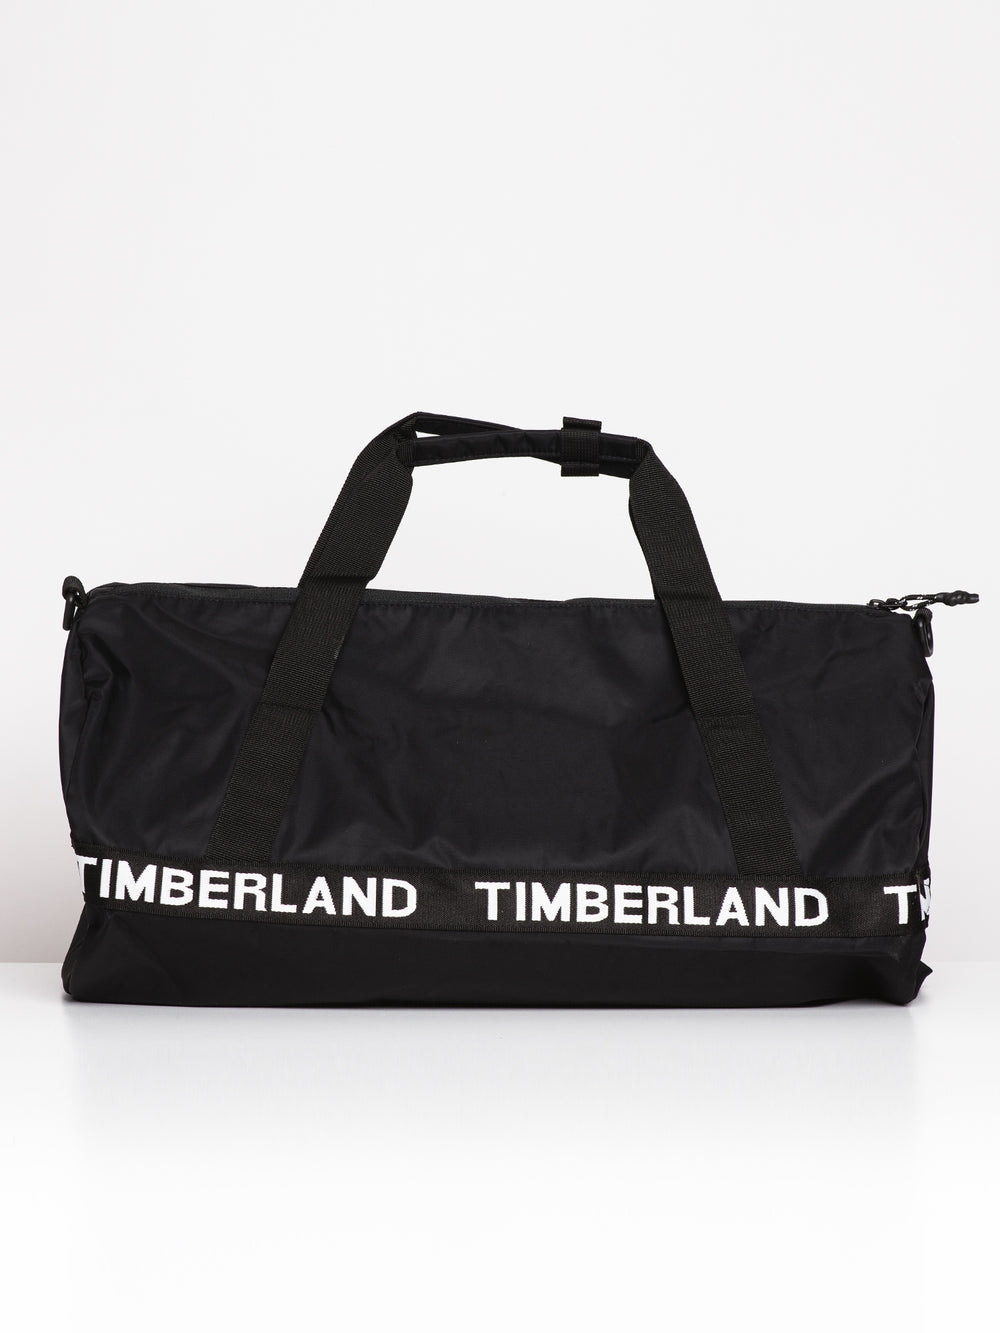 TIMBERLAND 37.5L DUFFLE - BLK